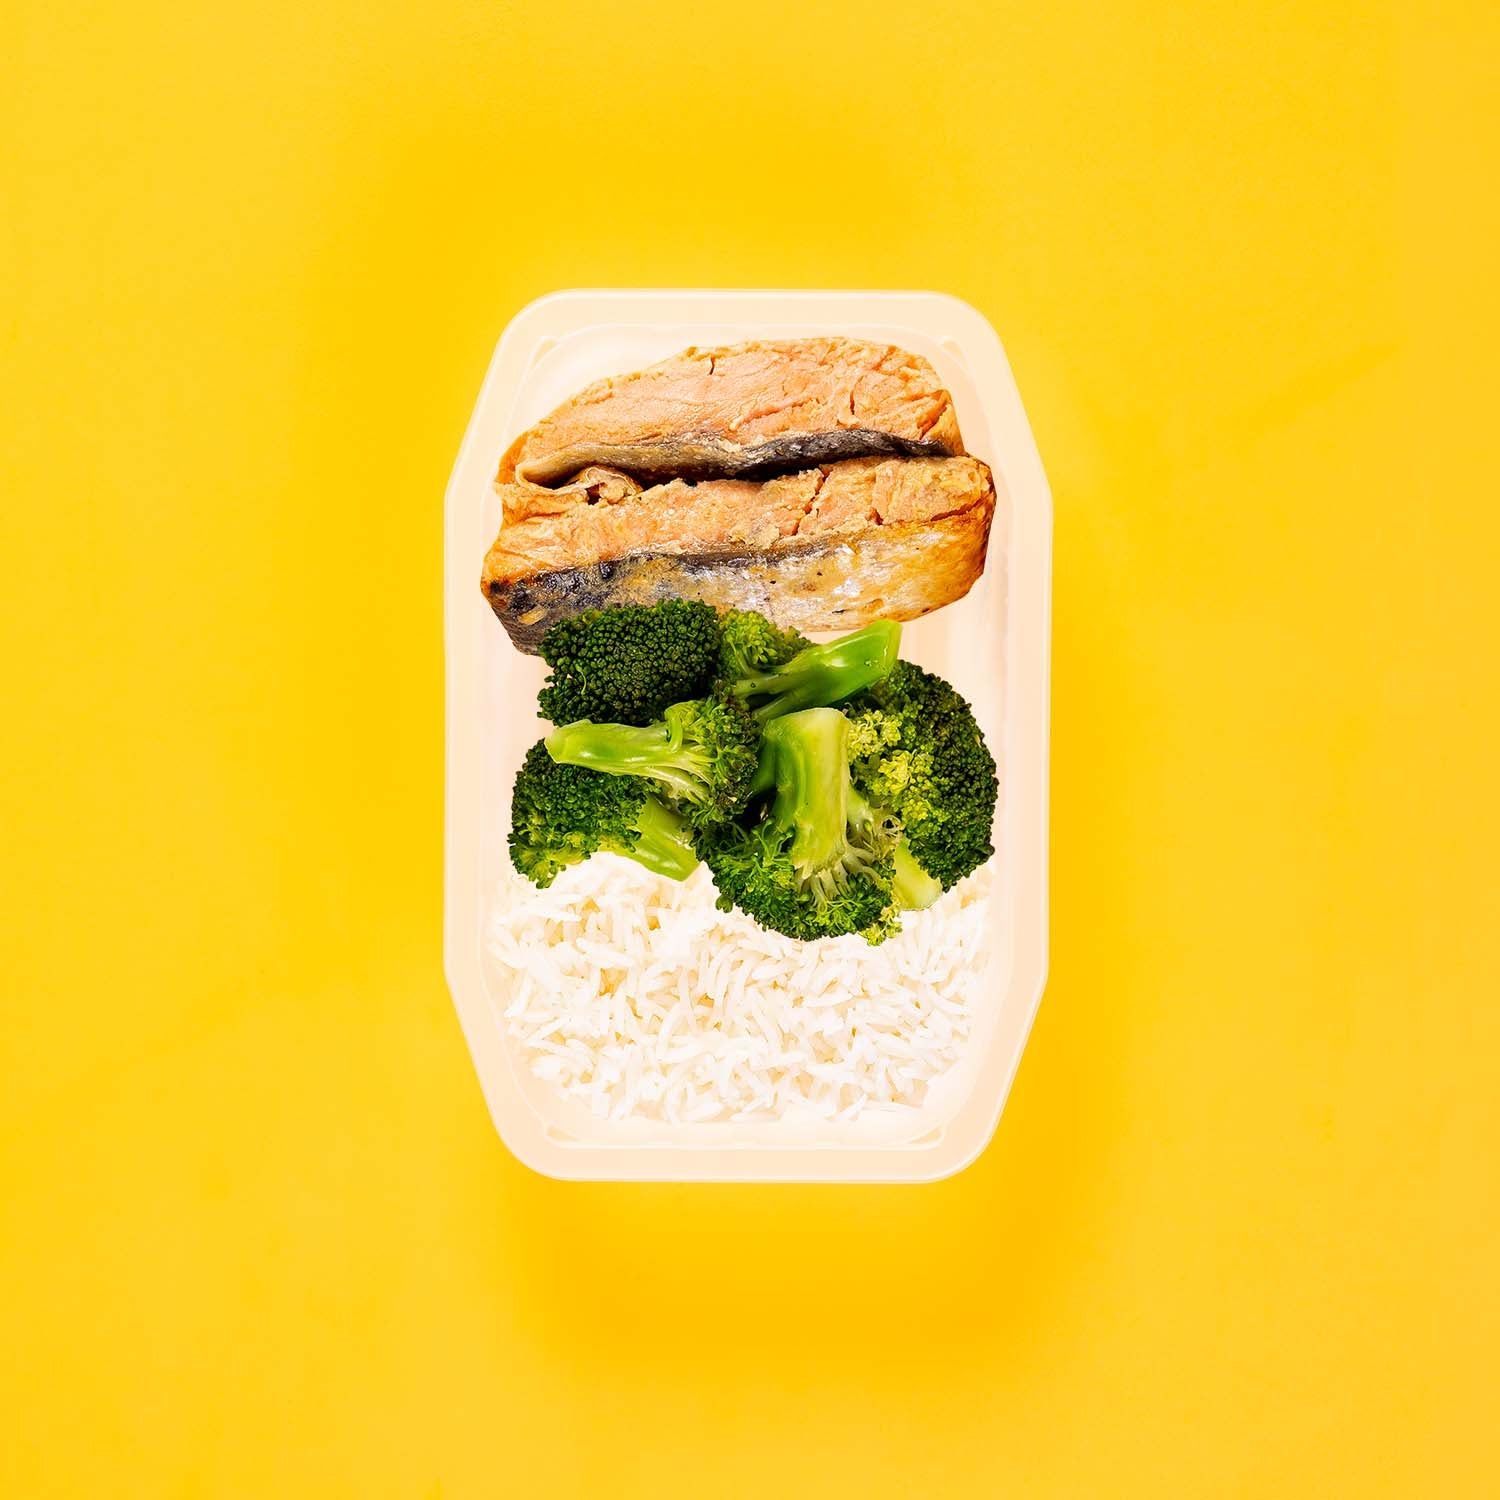 50g Miso Salmon 50g Broccoli 50g Basmati Rice